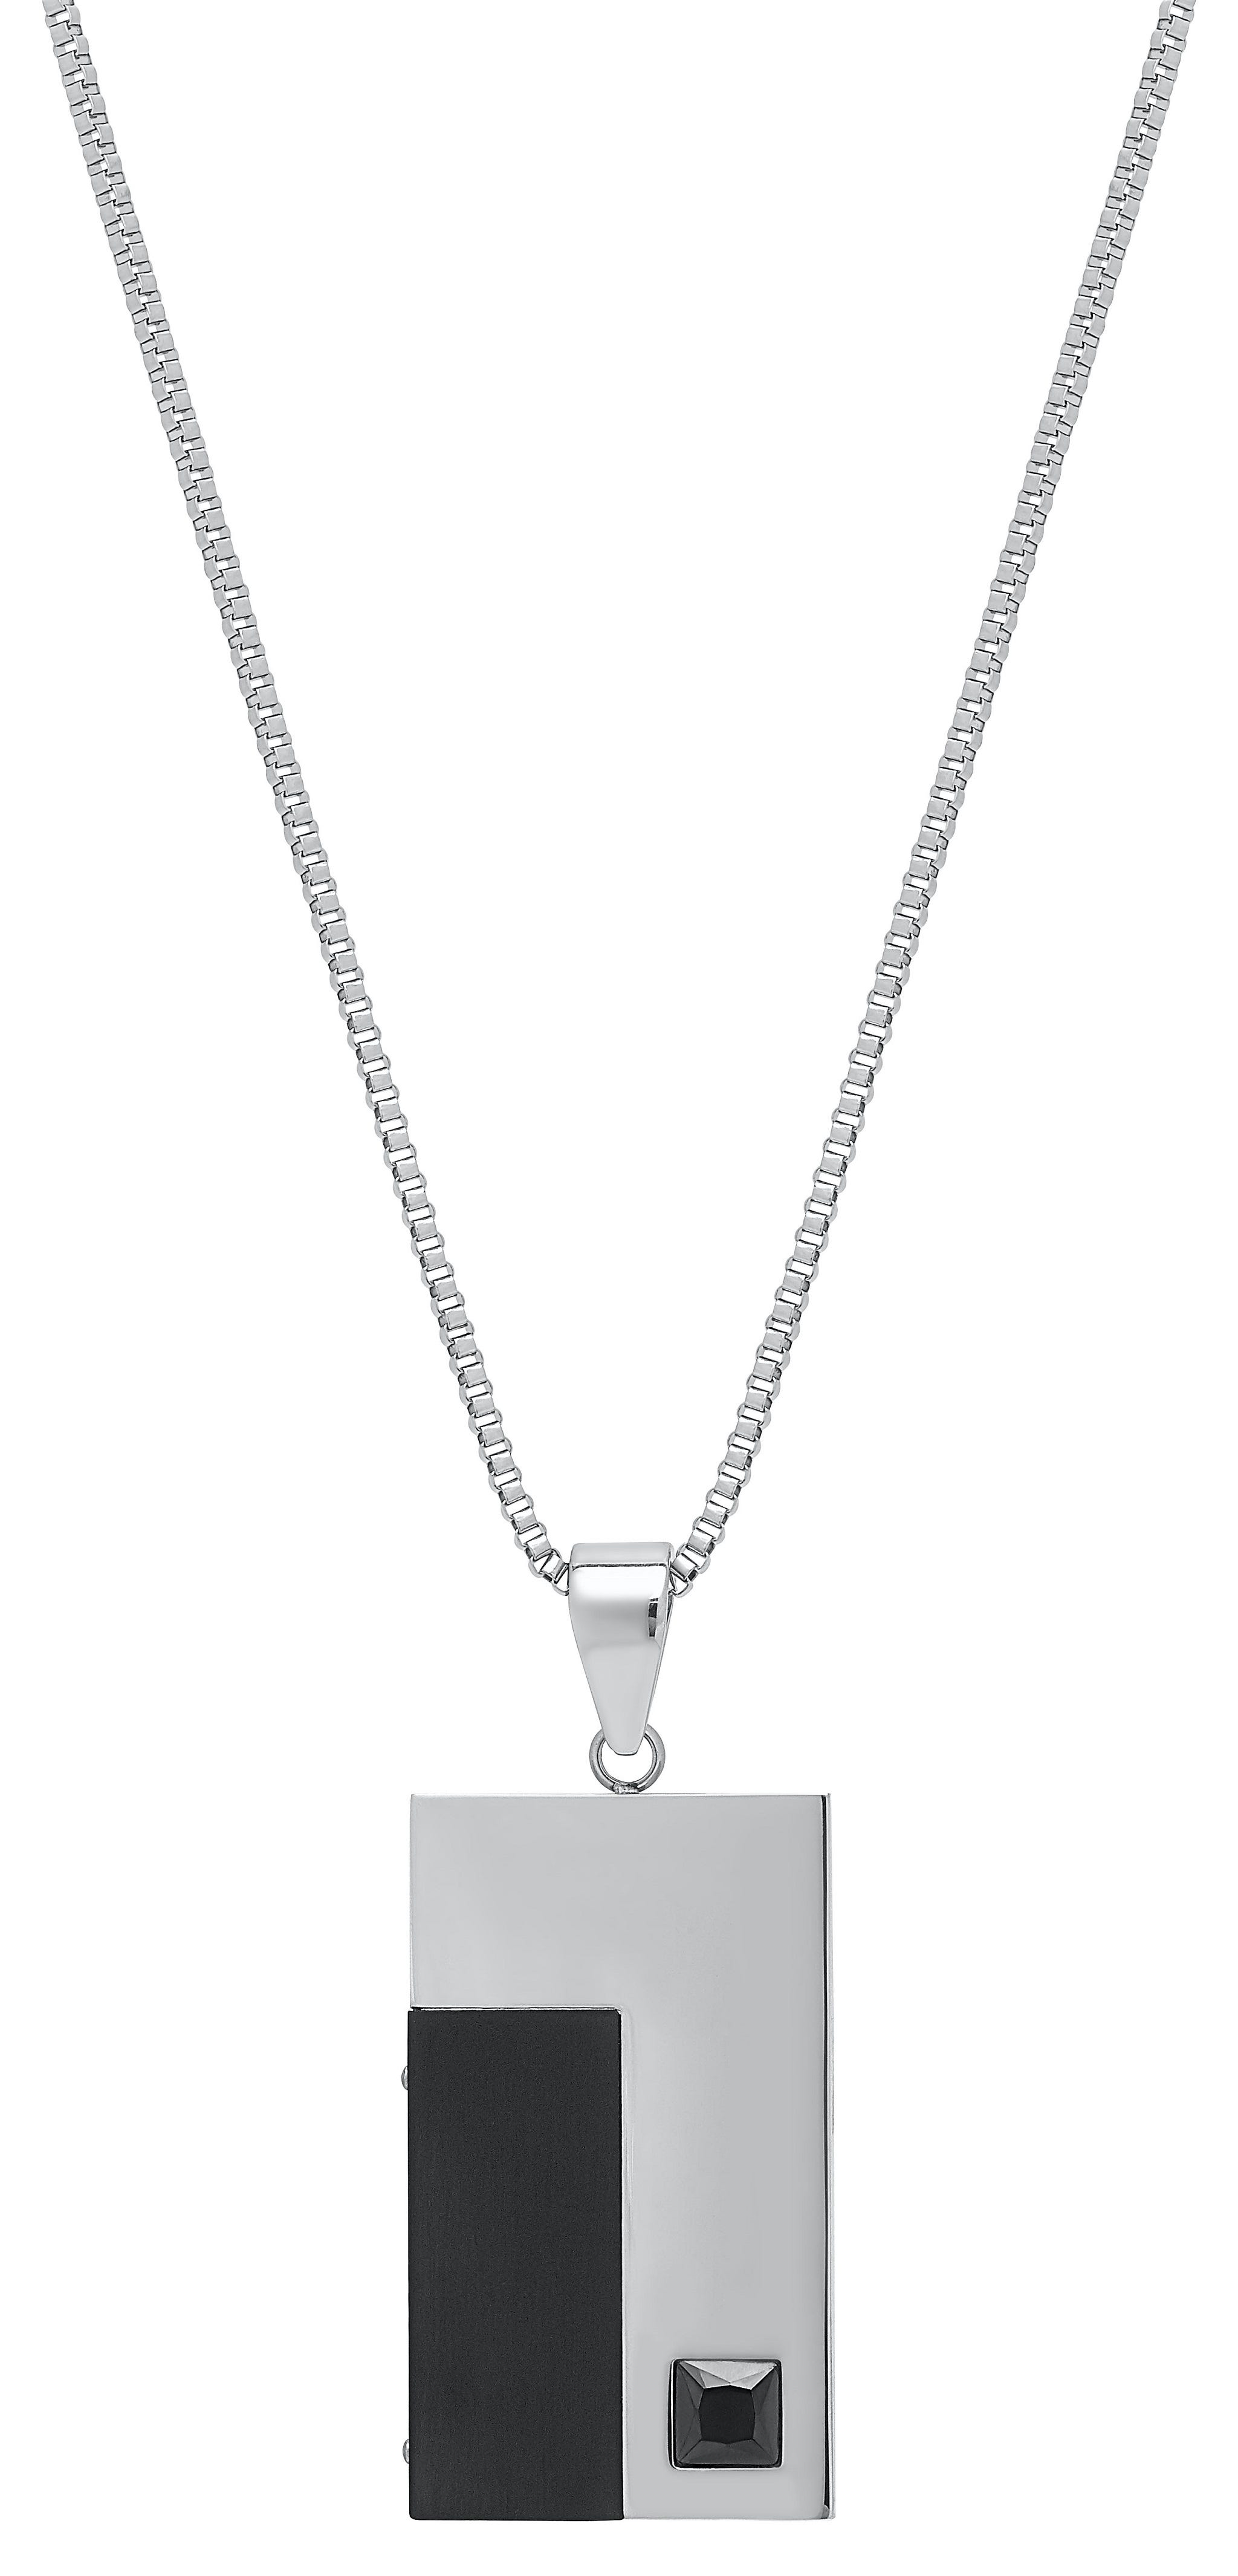 Black Plated Stainless Steel Rectangle Fashion Necklace